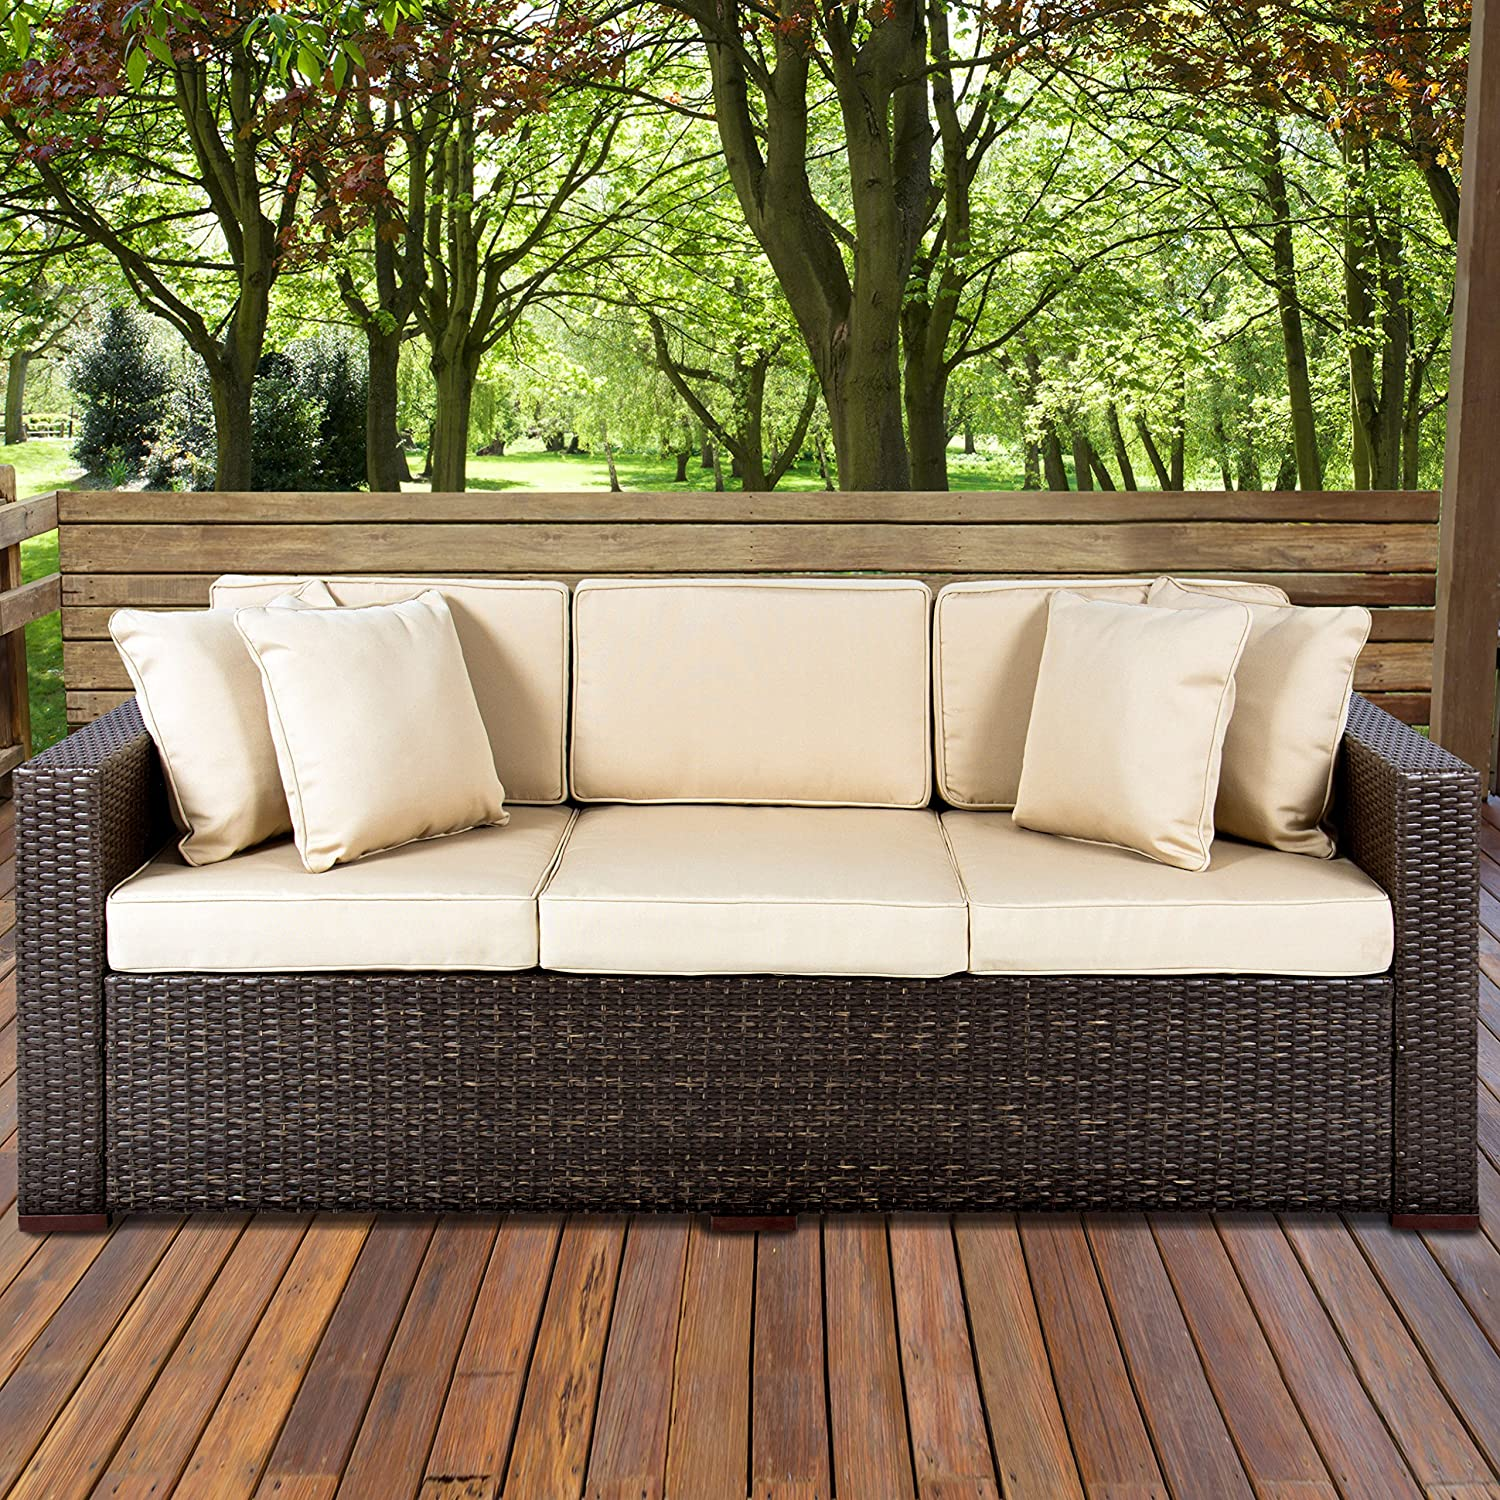 Amazon.com : Best ChoiceProducts Outdoor Wicker Patio Furniture Sofa 3  Seater Luxury Comfort Brown Wicker Couch : Patio, Lawn U0026 Garden